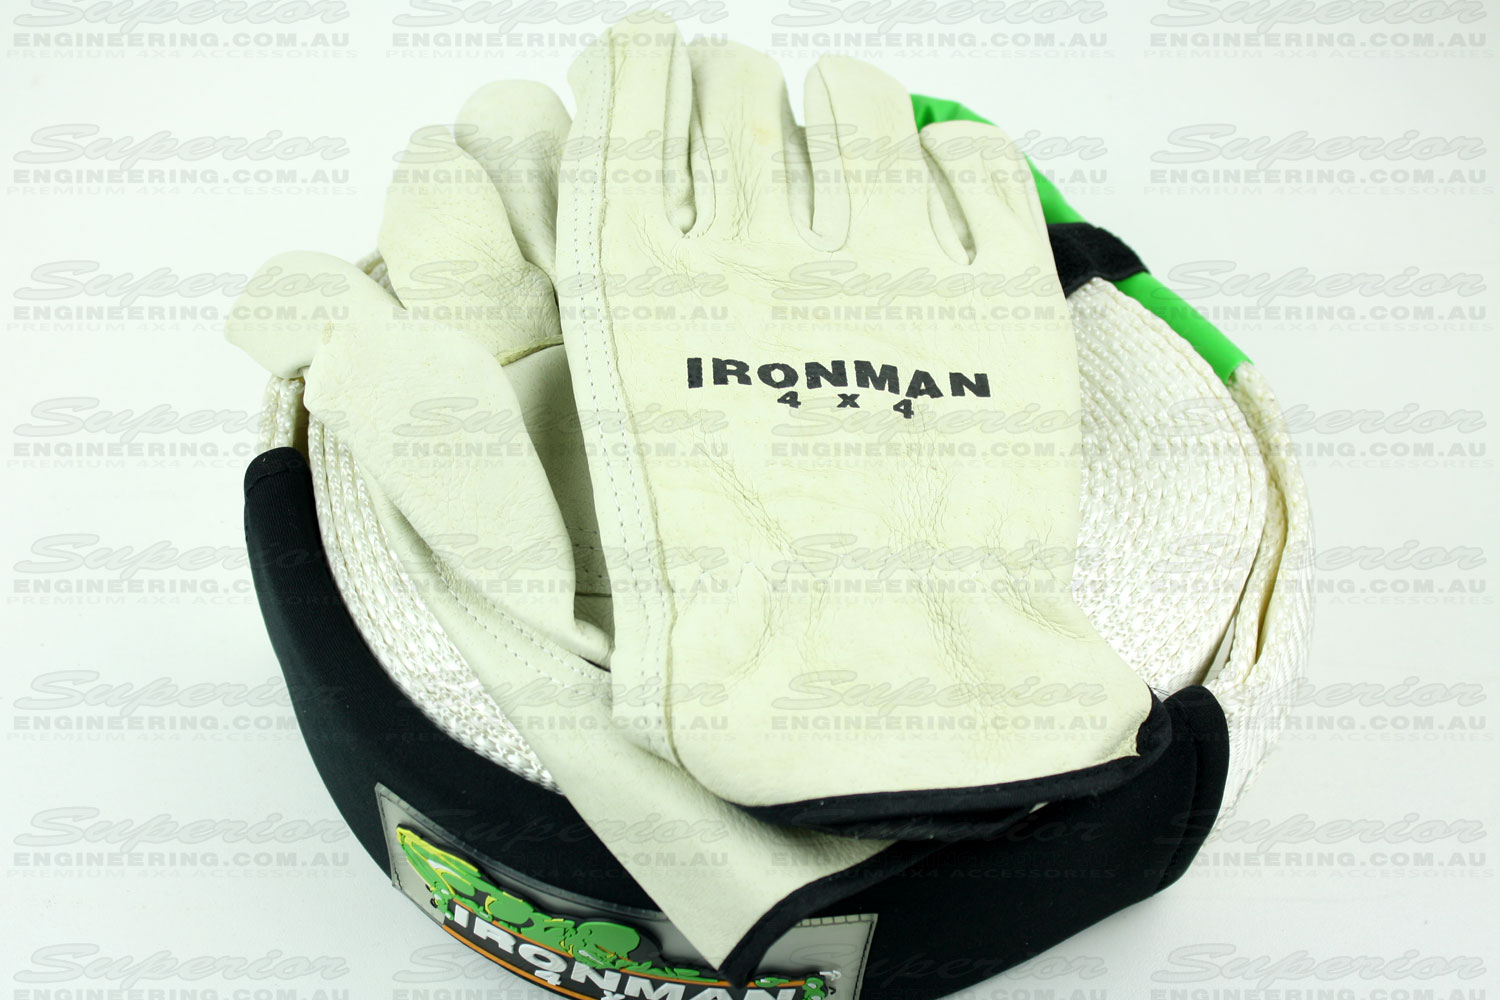 The recovery kit comes with a pair of super sturdy easy touch leather gloves